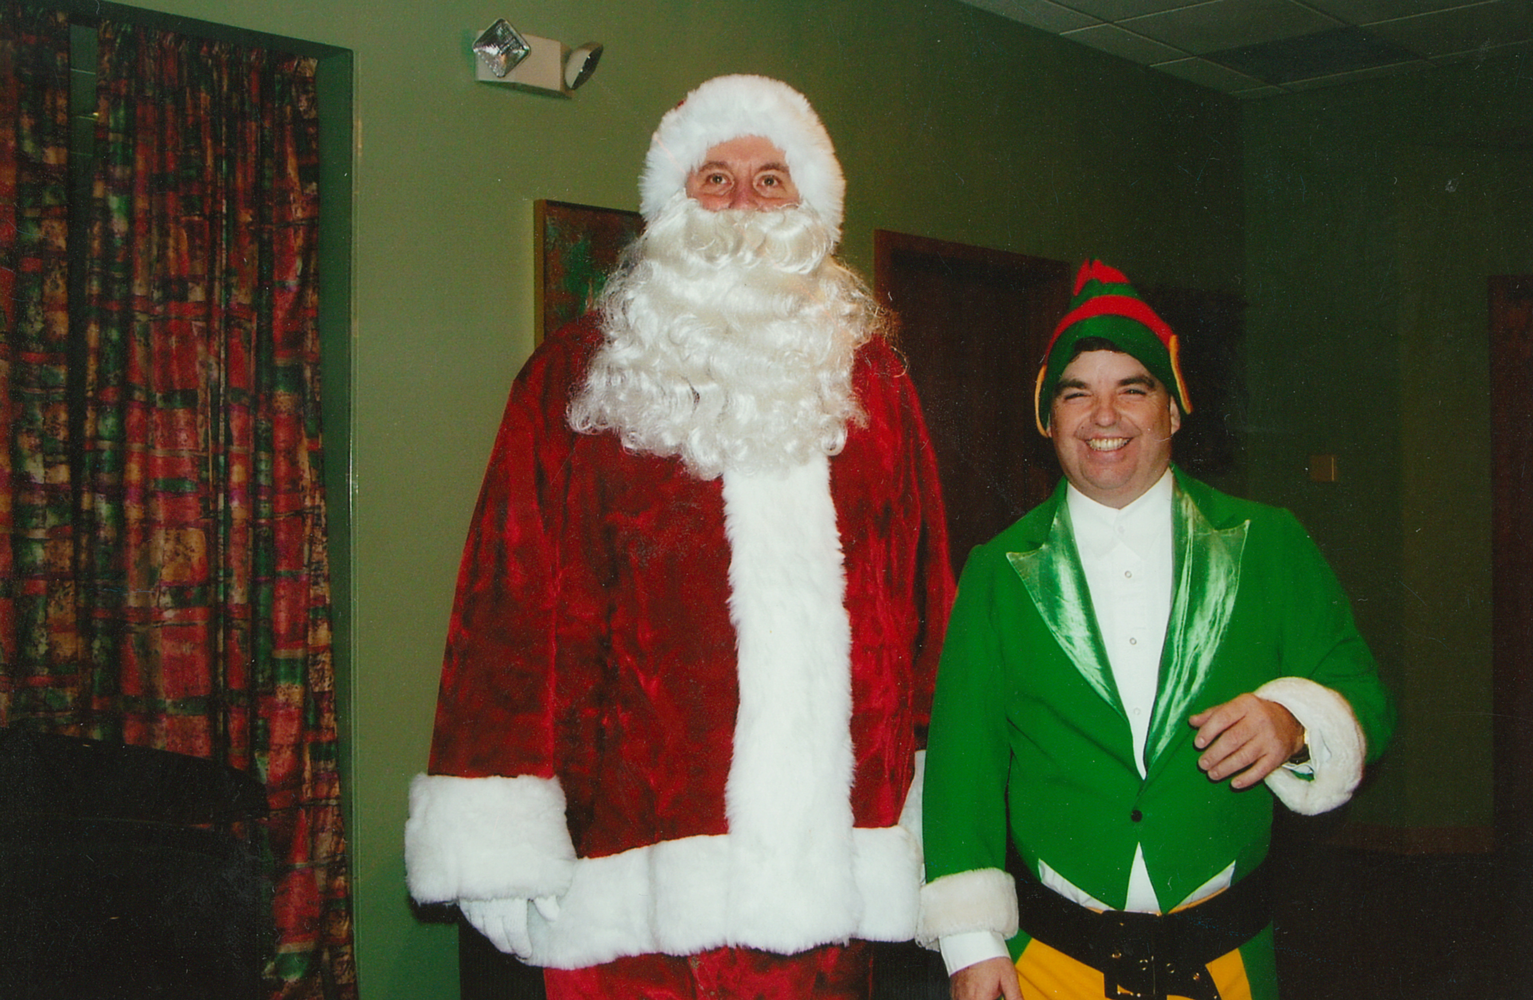 Christmas Party - Pete Duffy dressed as an elf